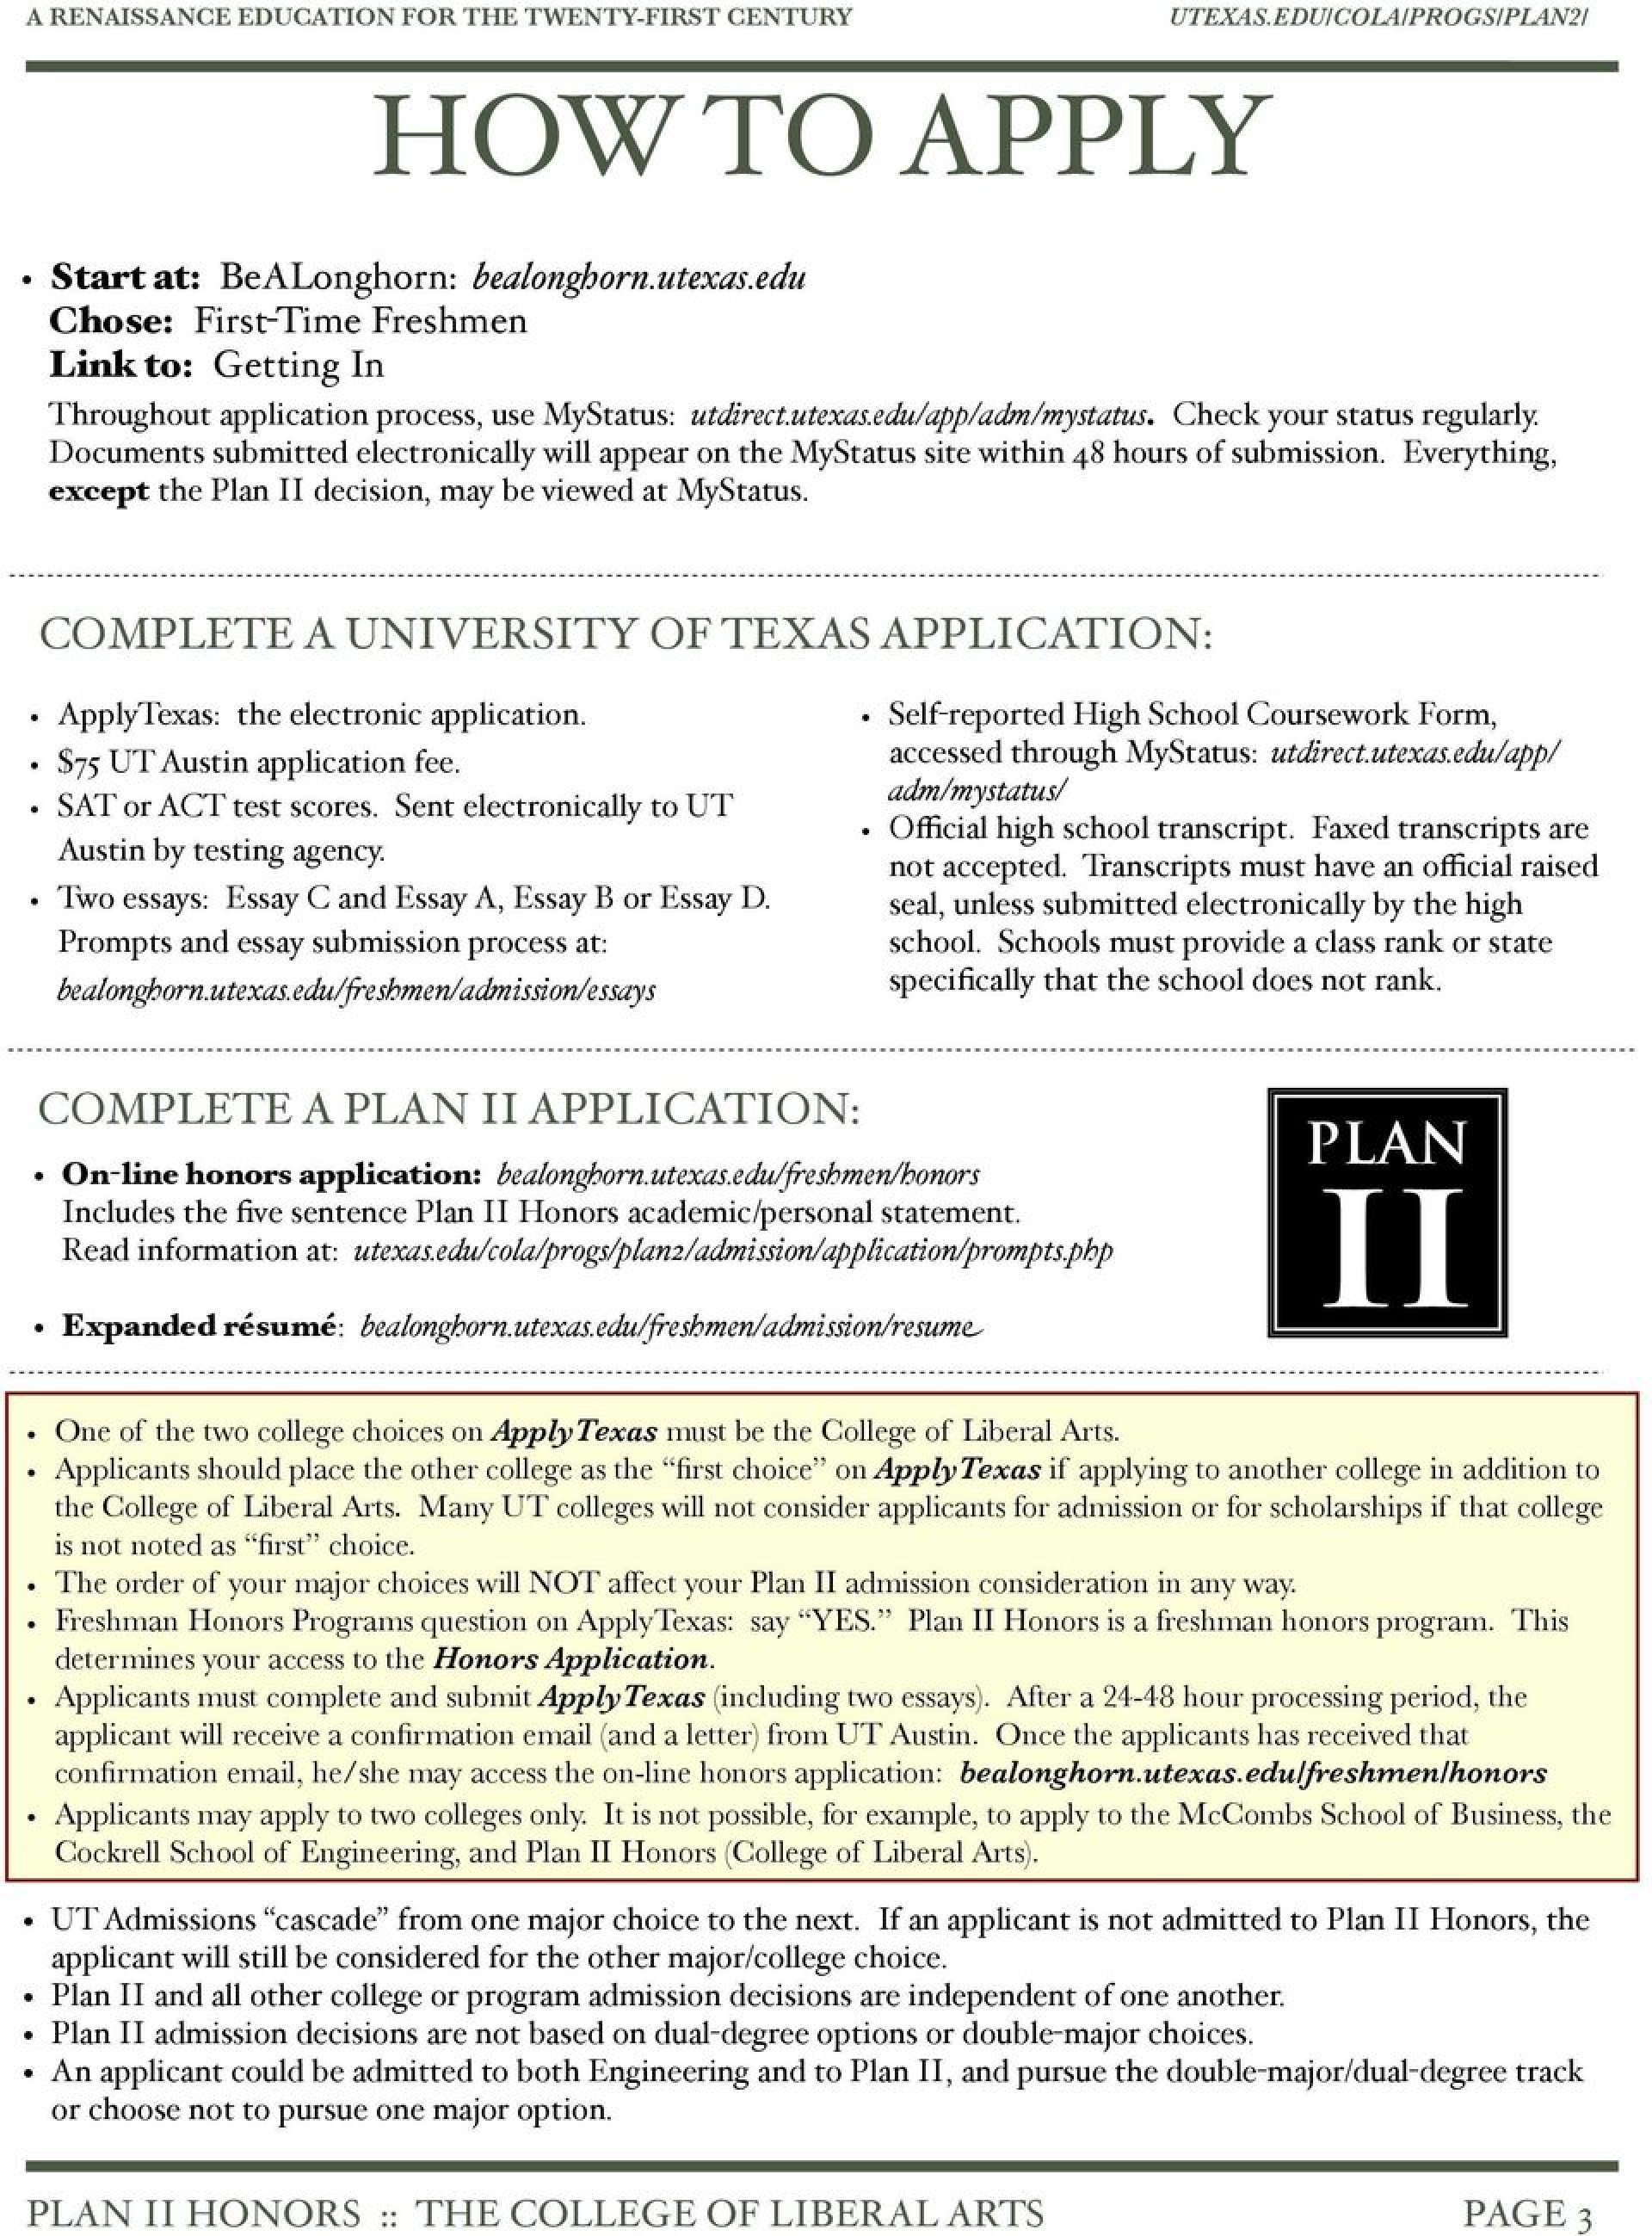 011 Page New Apply Texas Essays Topics Archaicawful Essay Prompts 2018-19 Topic C Examples B 1920